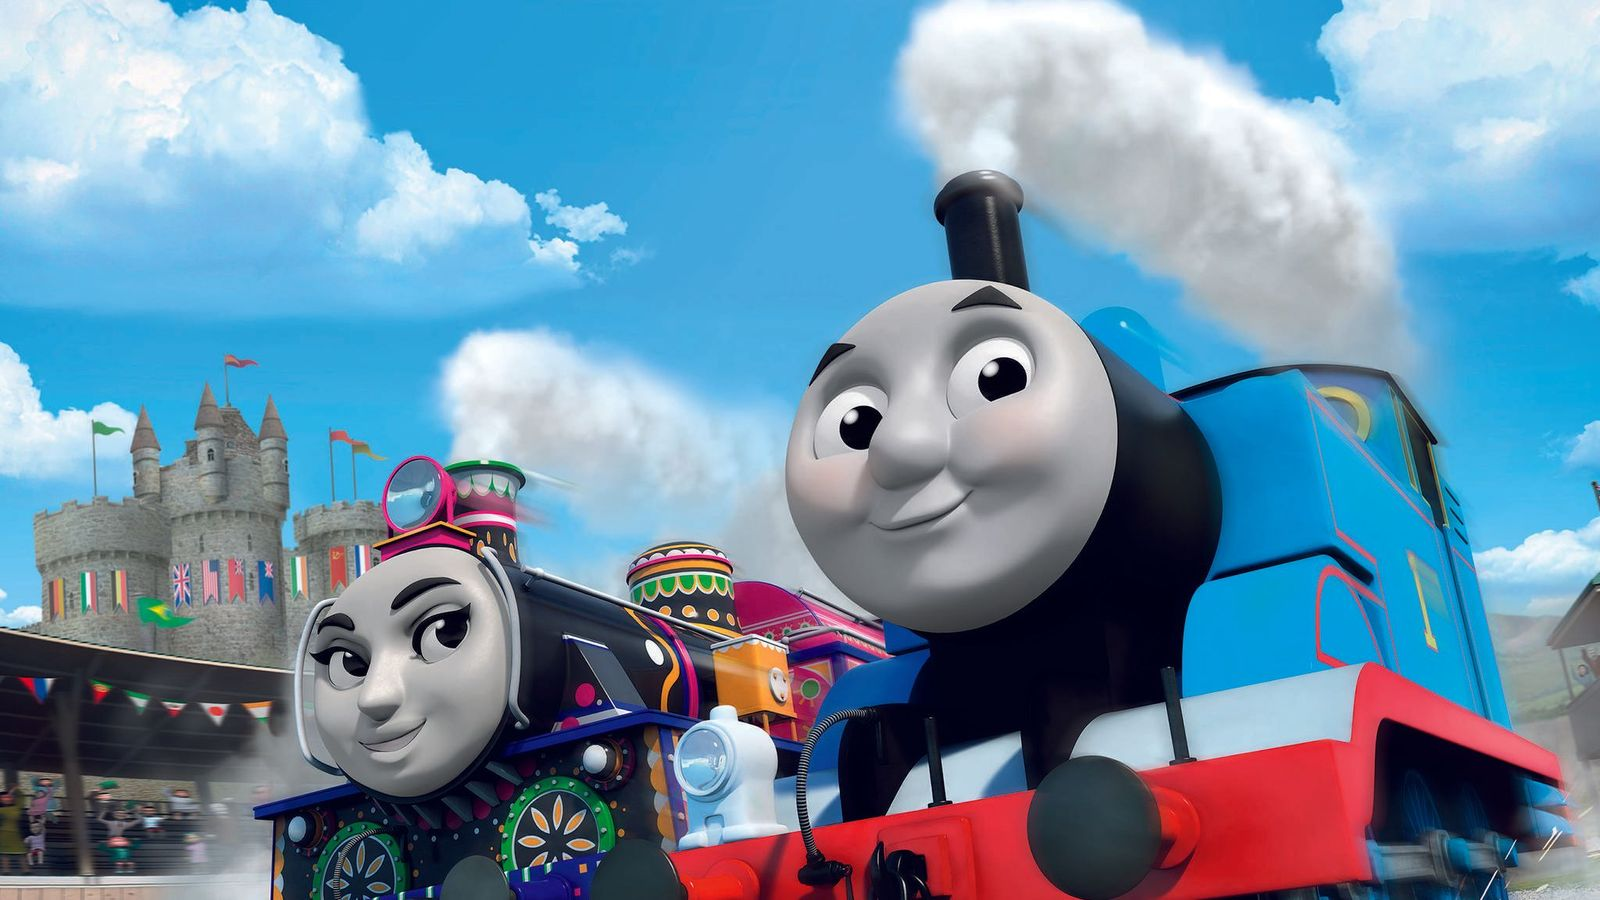 Thomas The Tank Engine Goes Multicultural In New Animated Film